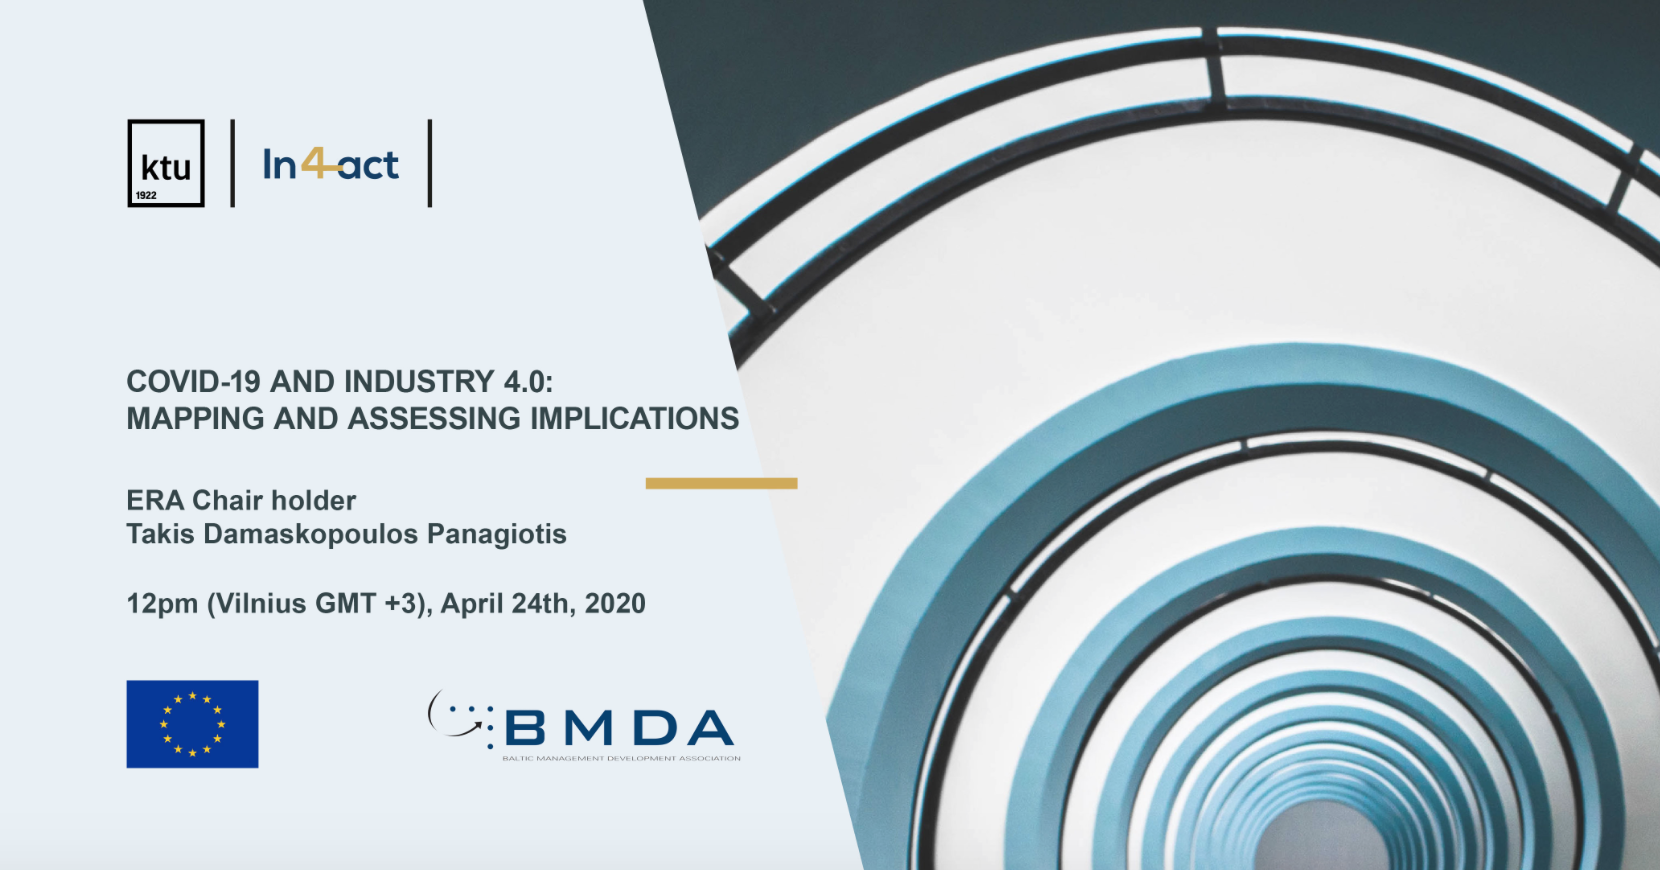 Already the fourth webinar of BMDA webinar series has been implemented